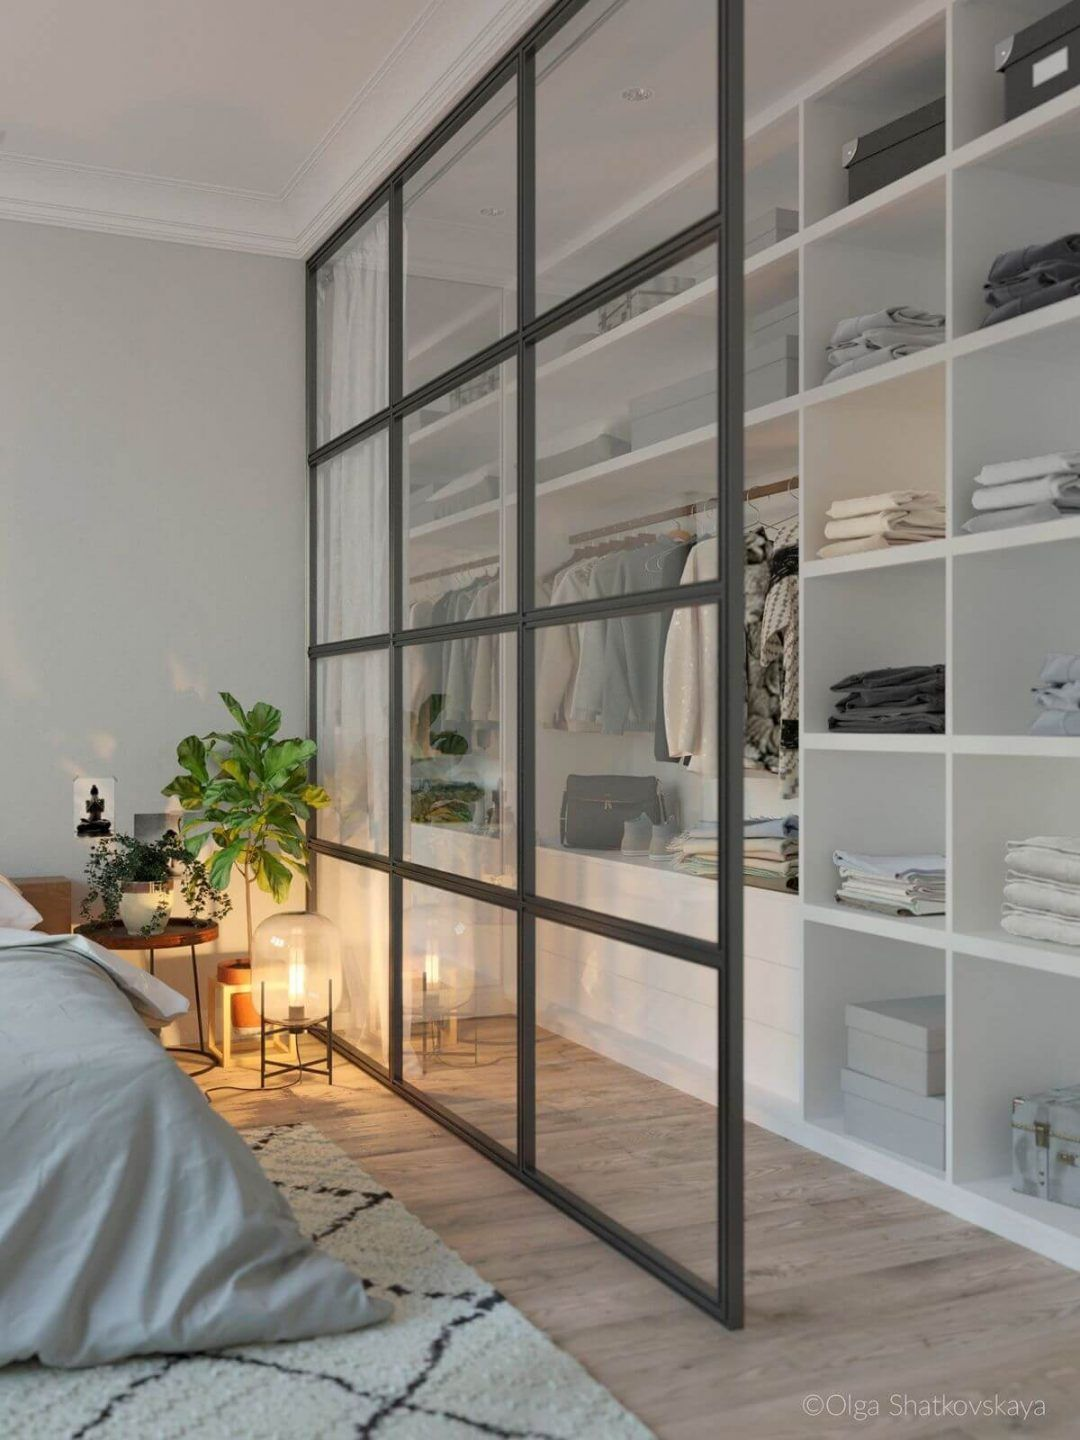 25 Scandinavian Bedroom Ideas To Give Airy And Stylish Look - 23Q